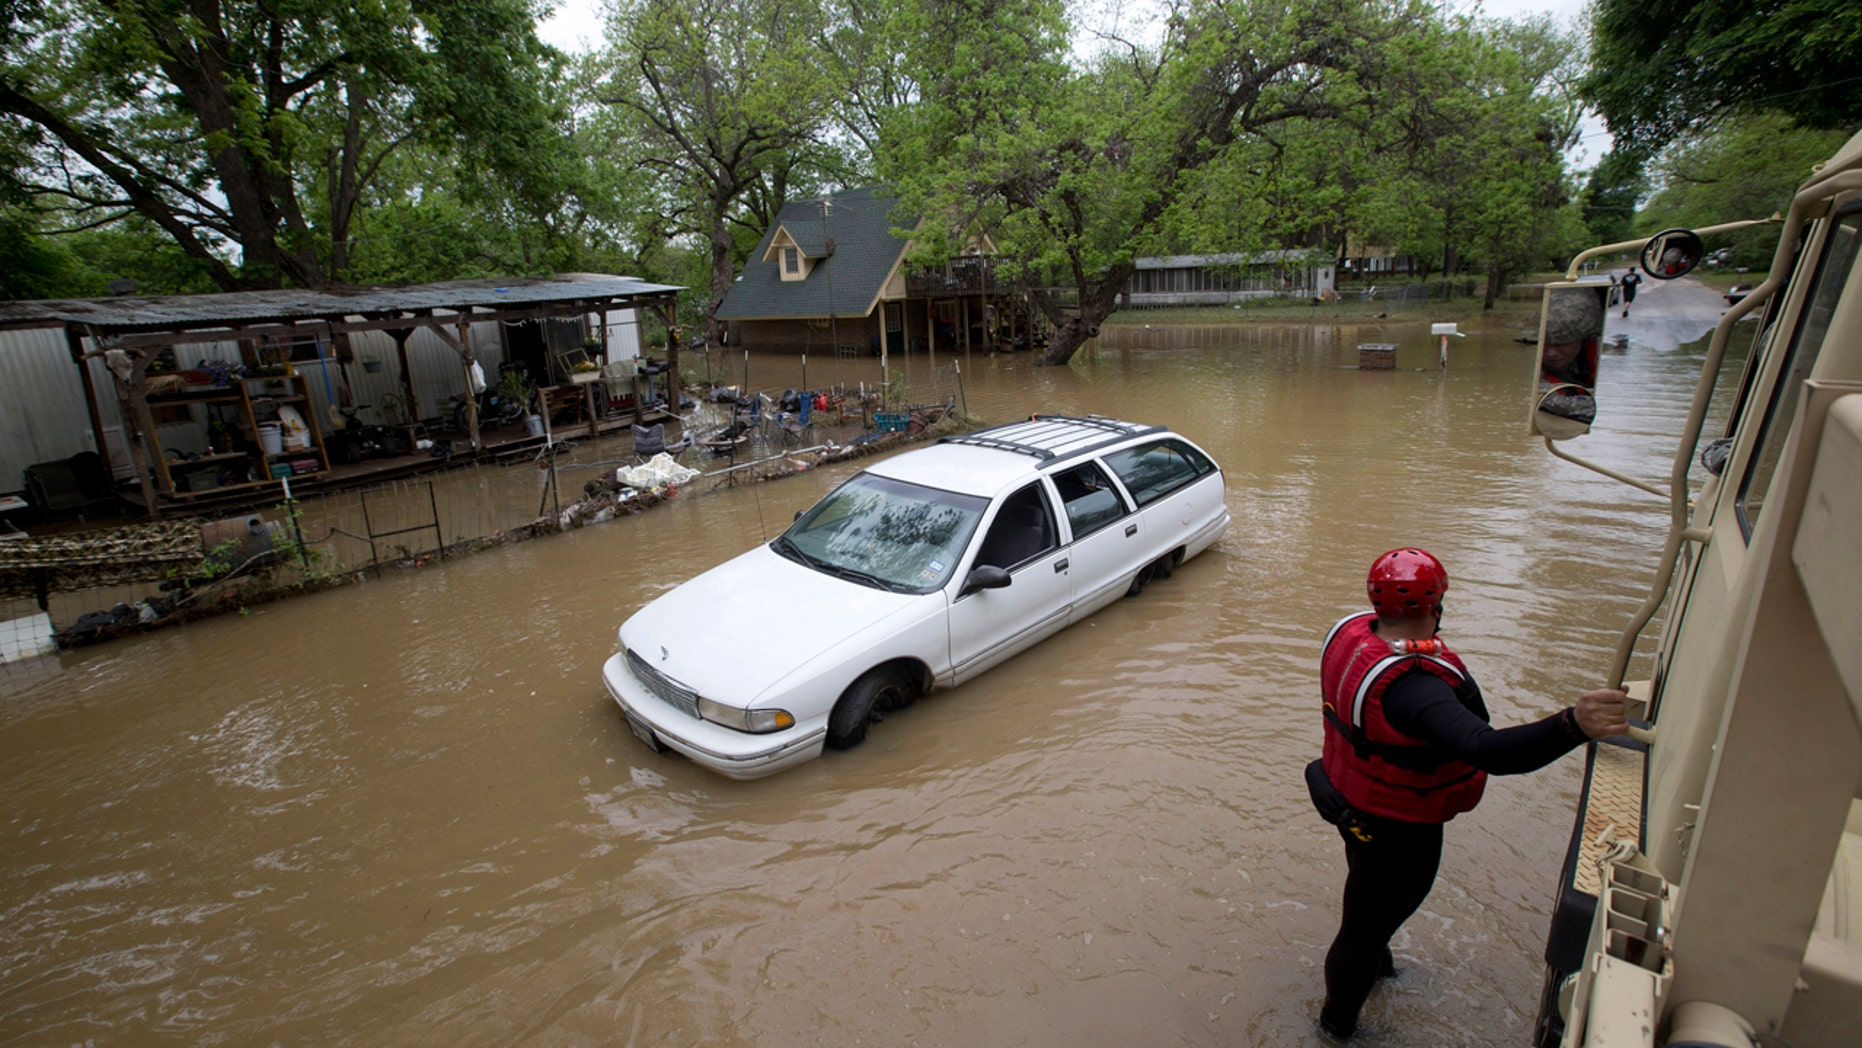 April 19, 2016: Volunteer firefighters/swift water rescuers from Springcreek Volunteer FD station 3 in Horseshoe Bend, Texas, check on the welfare of residents who decided to stay in their homes during the Brazos river flooding in the Horseshoe Bend area of Parker County.